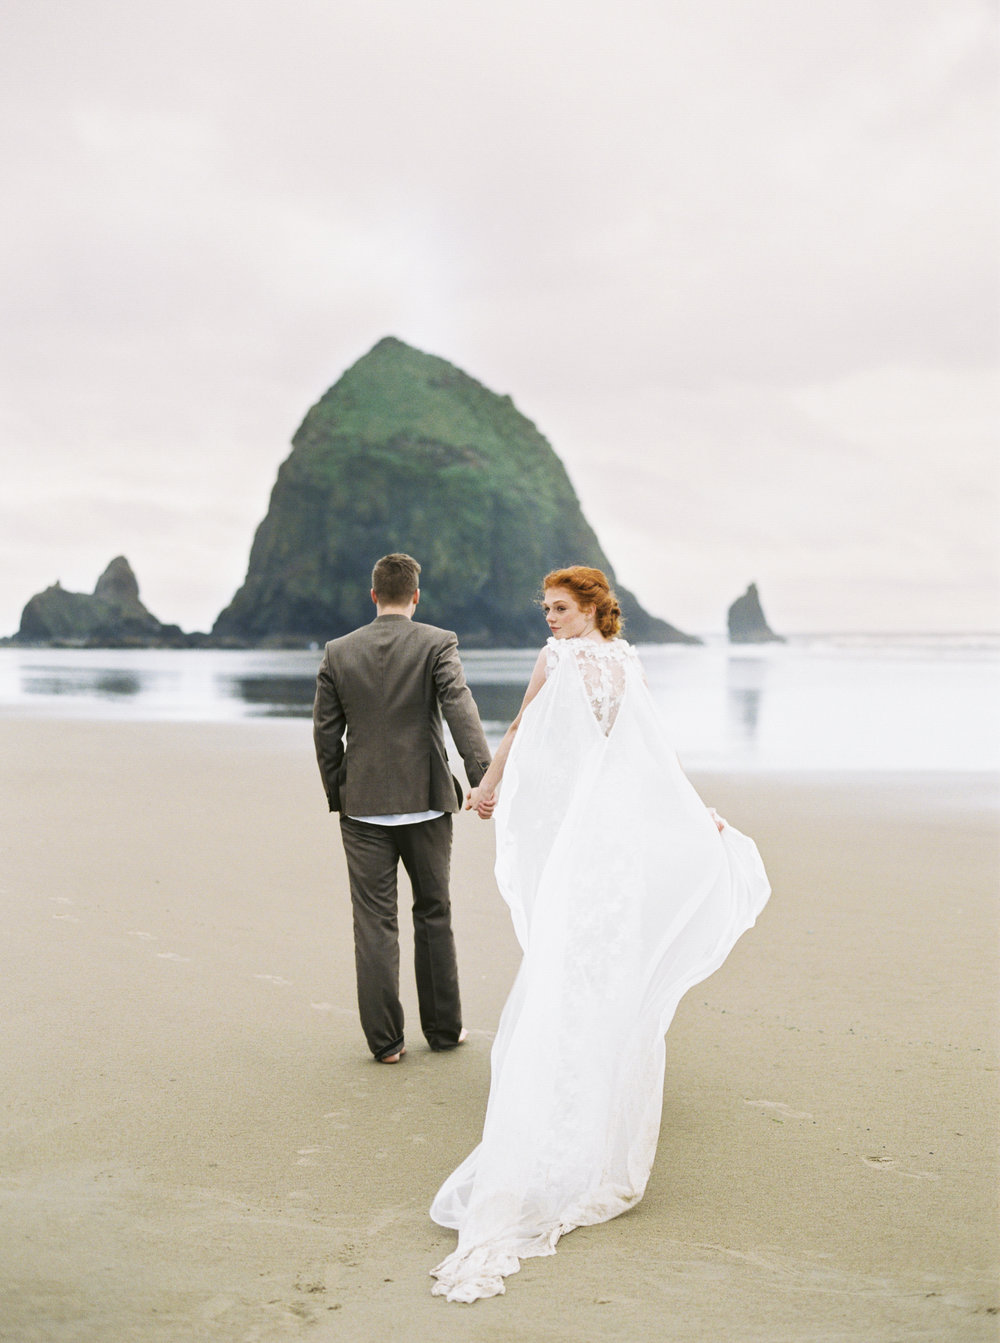 002@outlivecreative_cannon_beach_destination_wedding_photographer_&_videographer.jpg